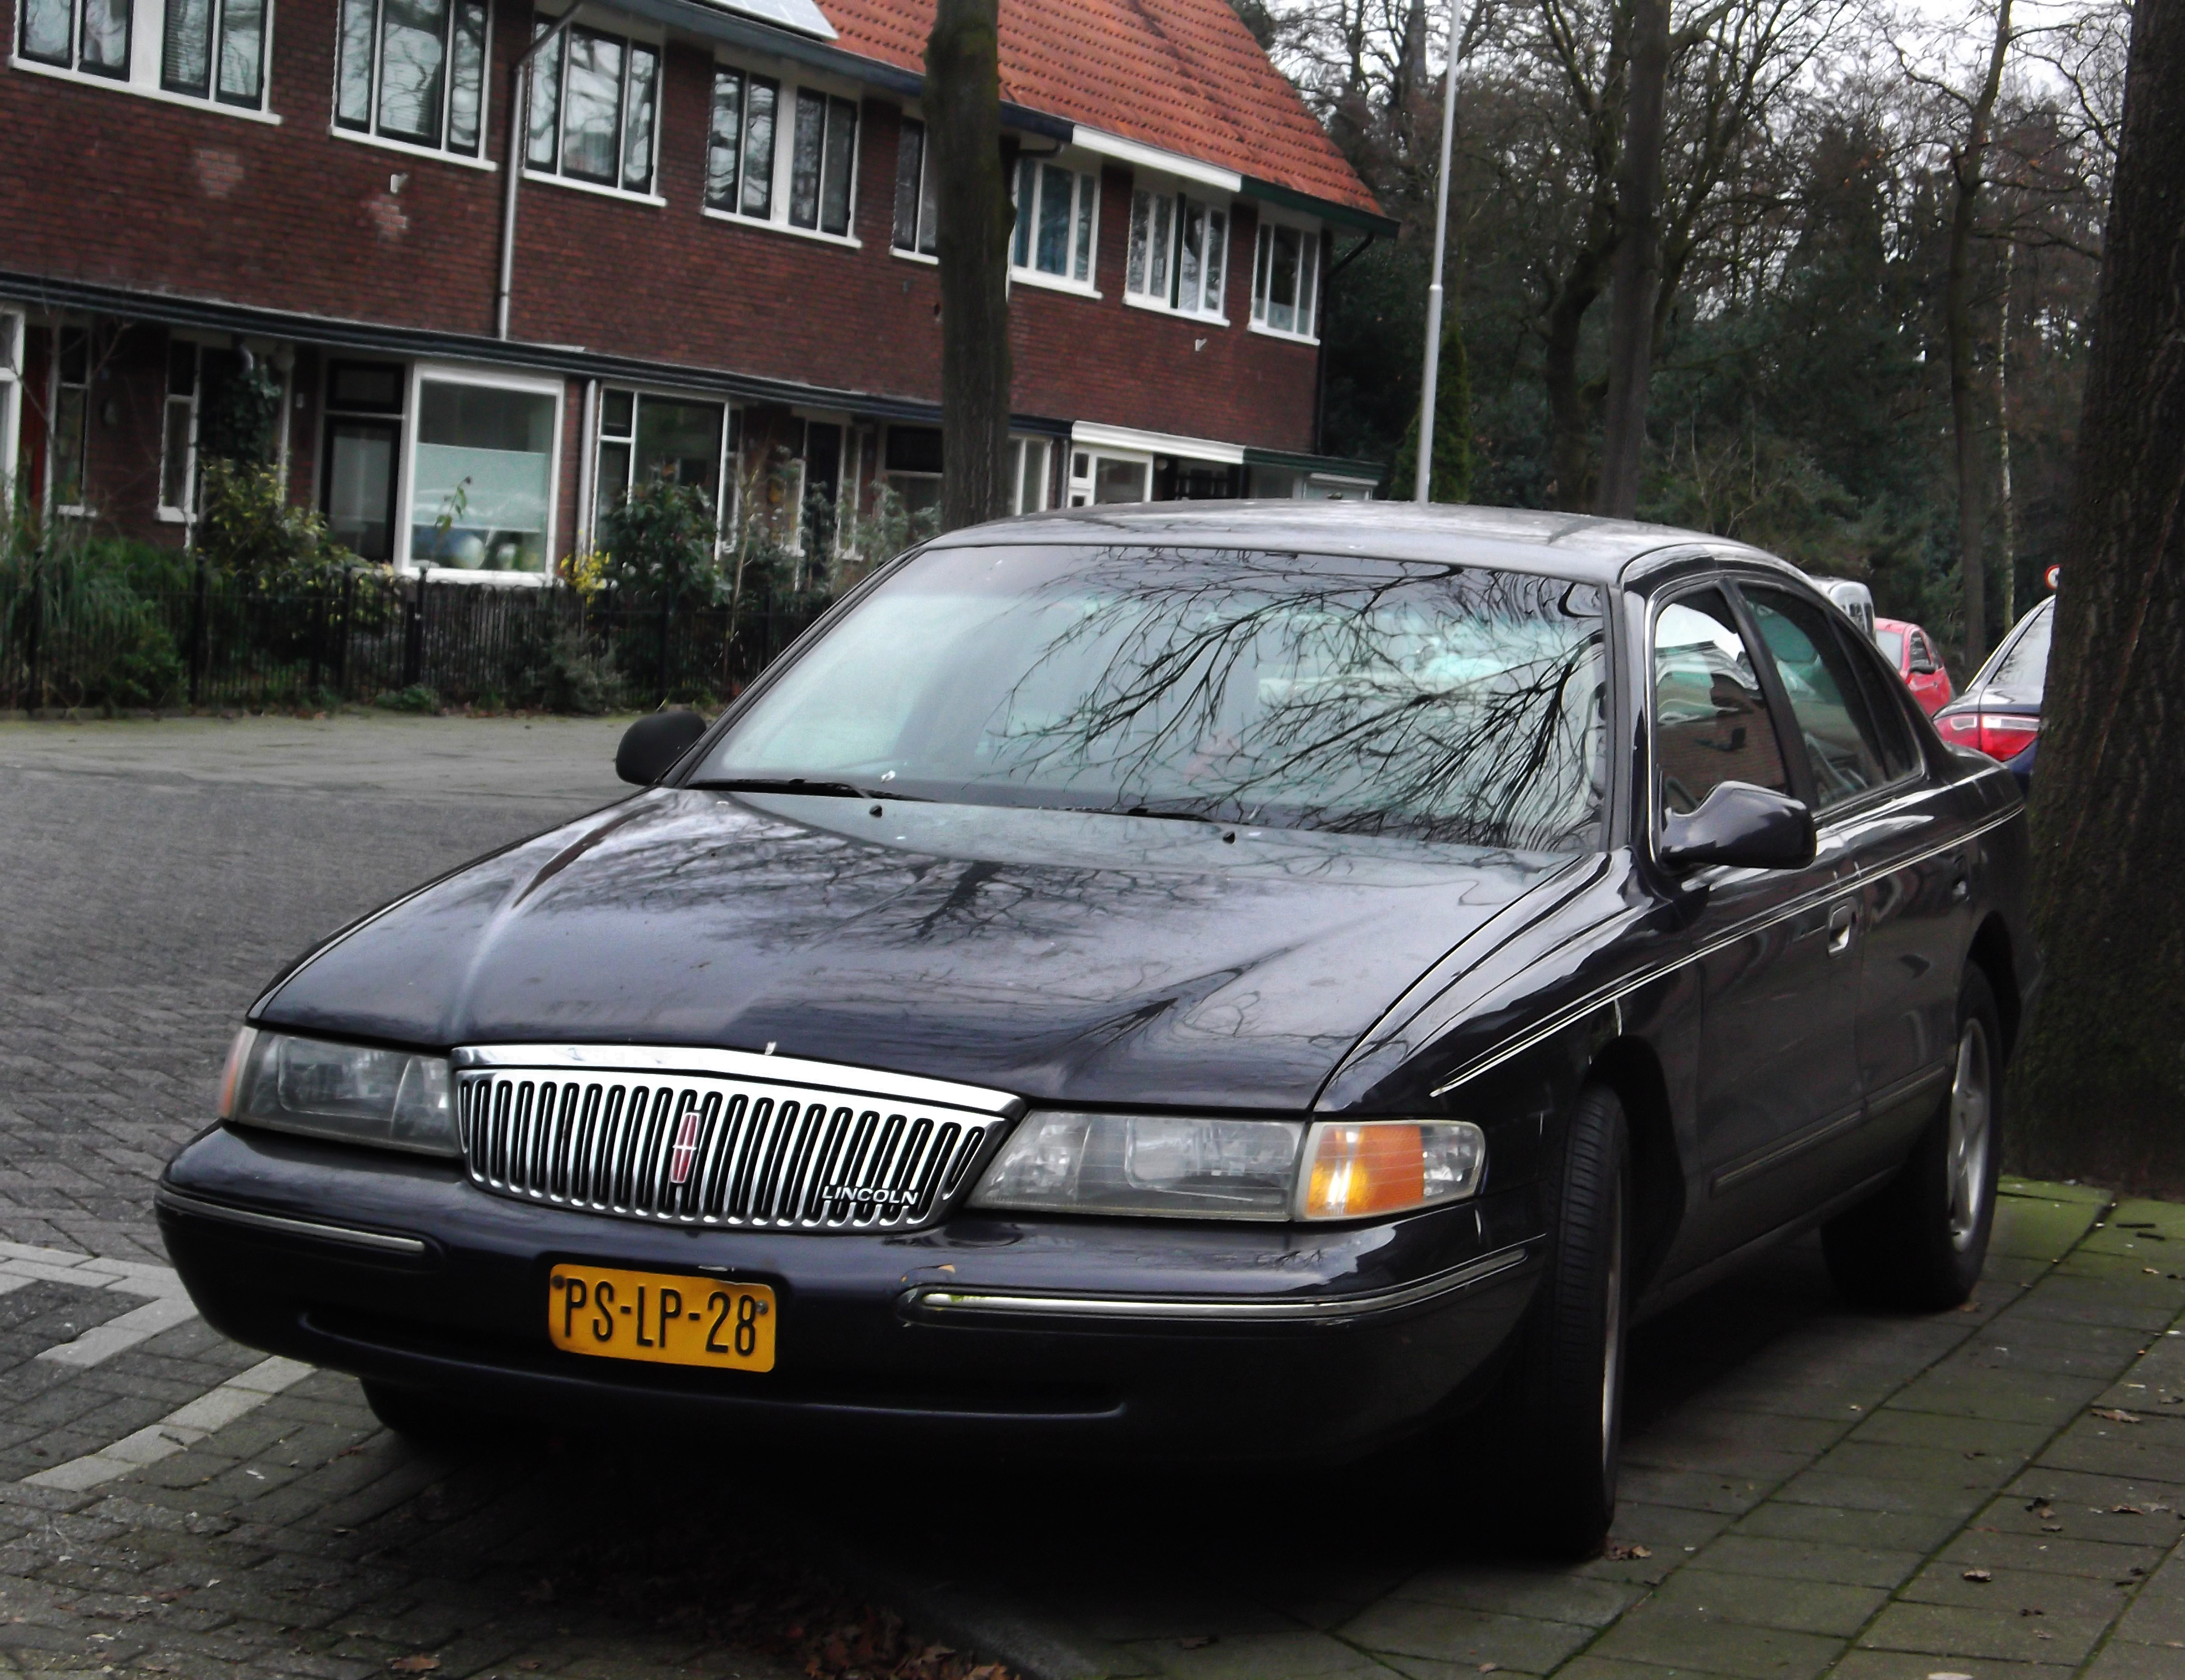 1996 Lincoln Continental In The Netherlands Regularcarreviews